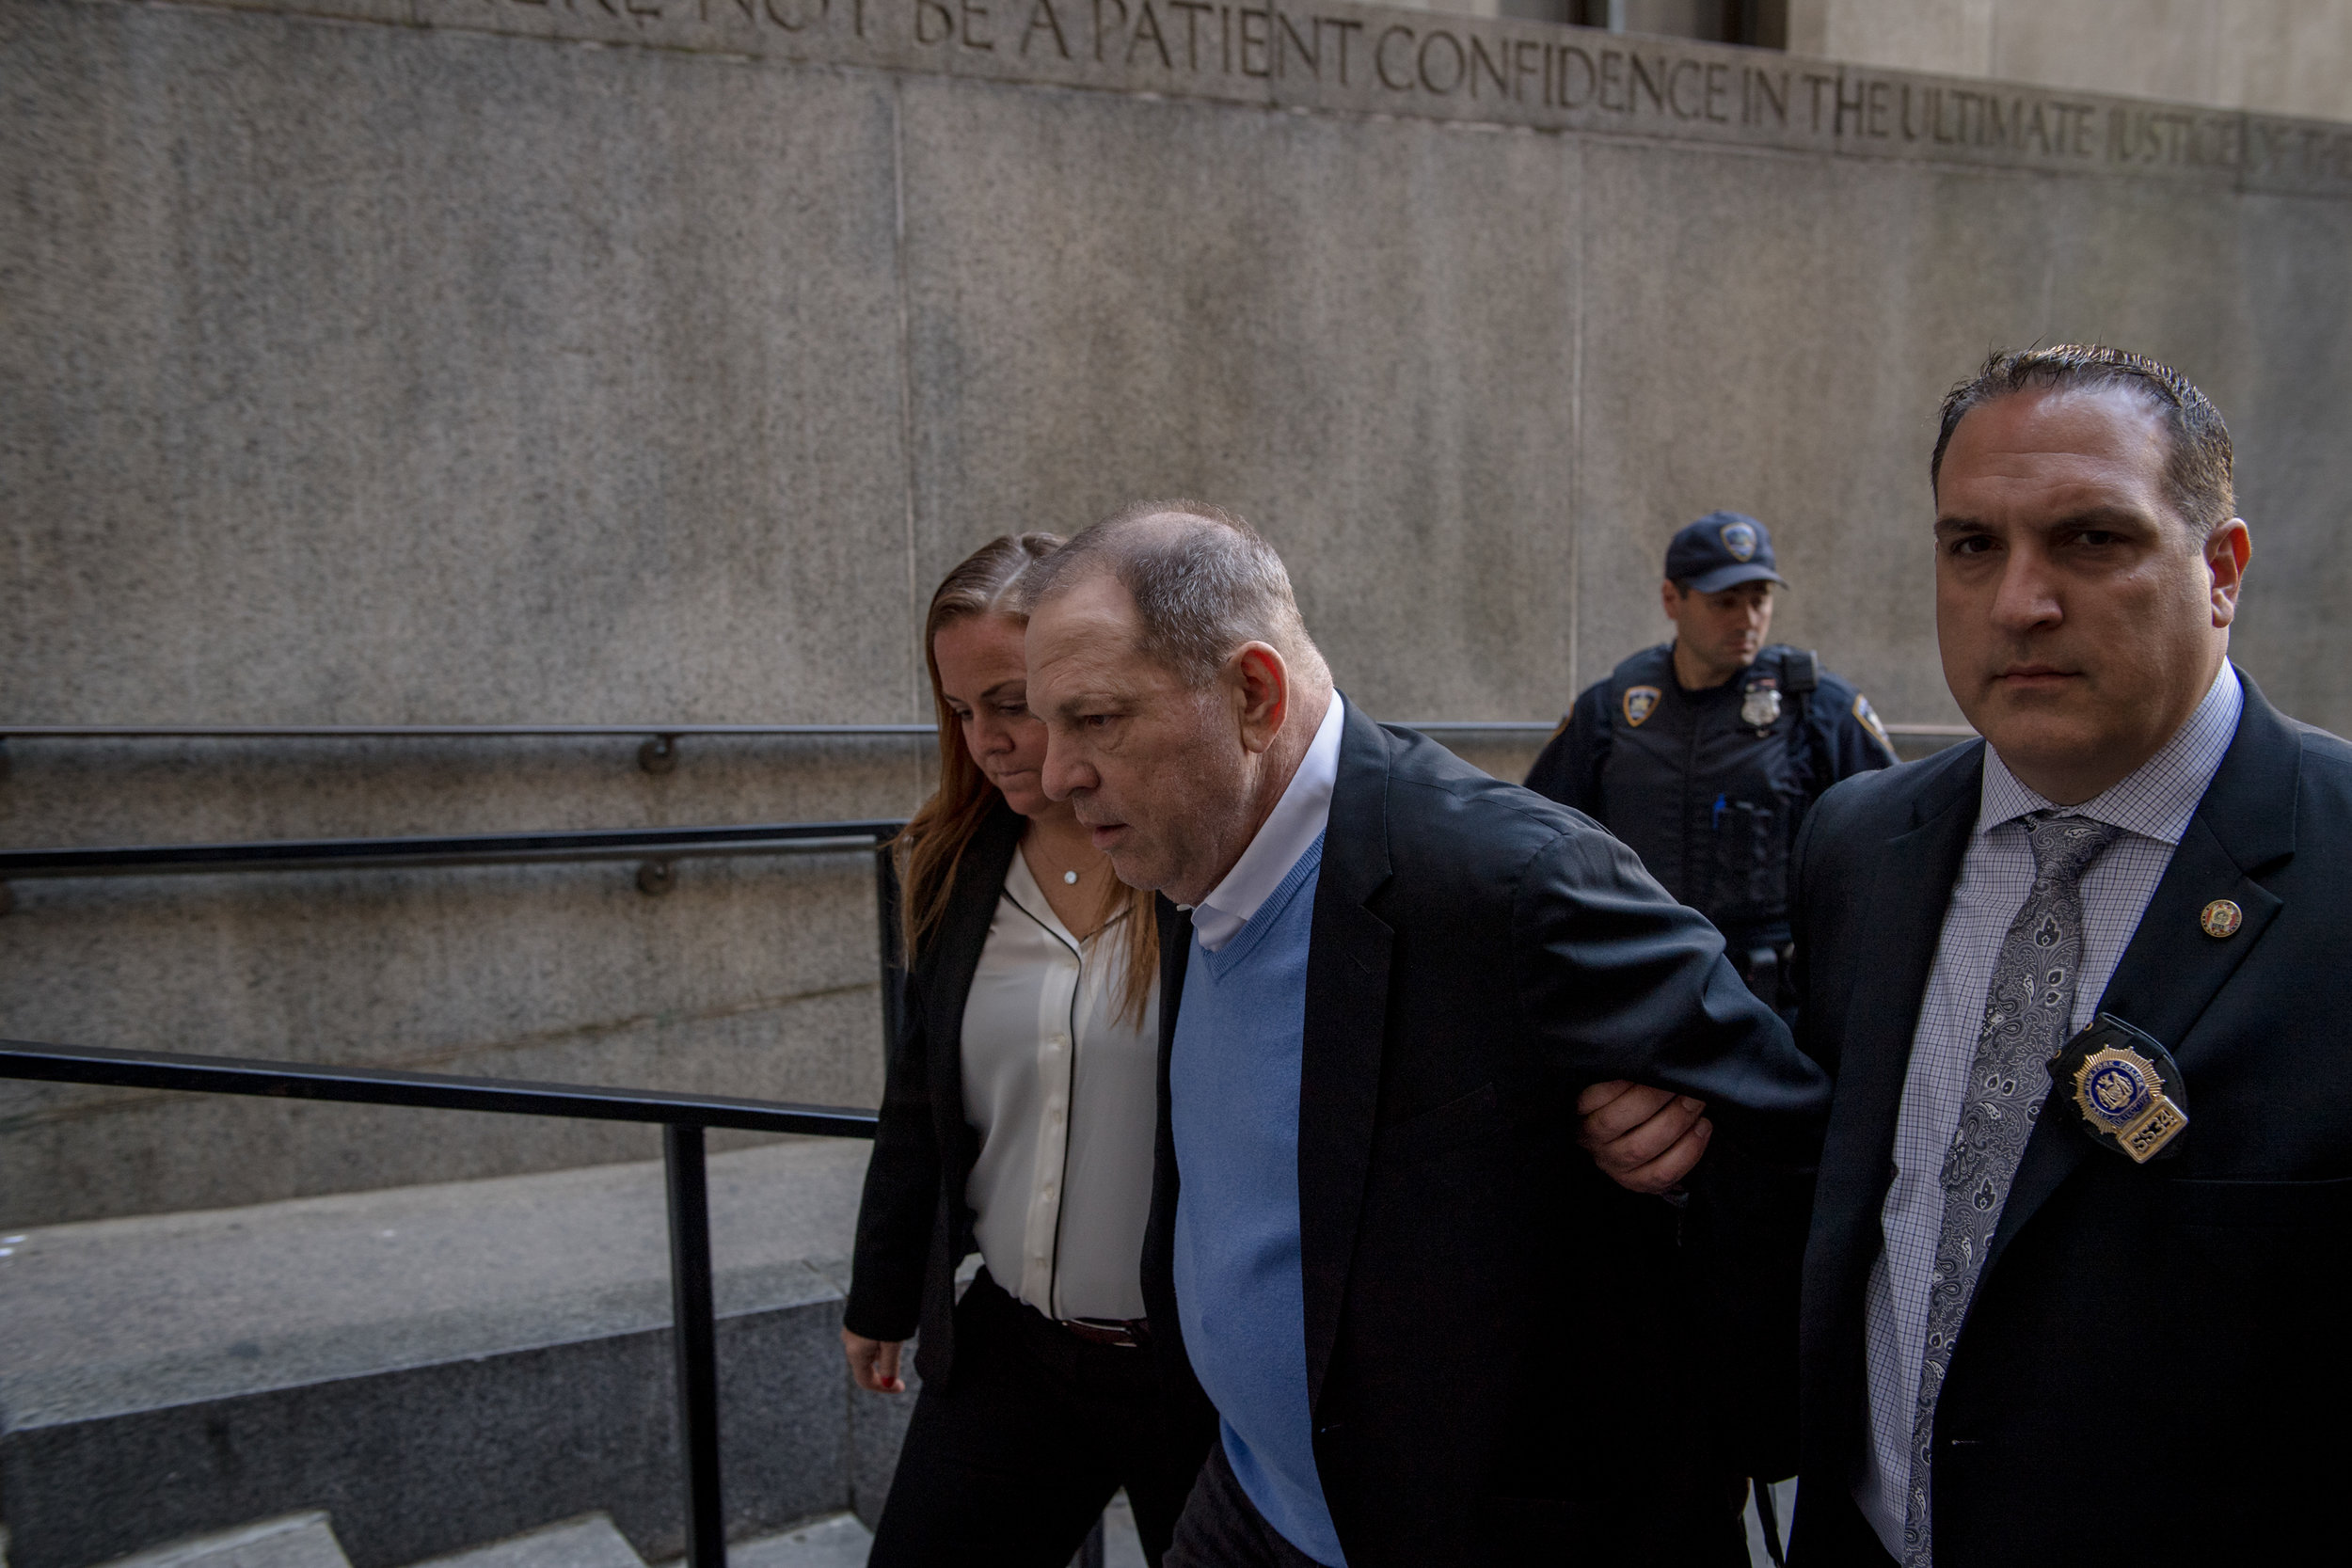 HILARY SWIFT  www.hilaryswift.com  |  @hlswift   Harvey Weinstein is escorted into Manhattan Criminal Court for the first time on May 25, 2018. Weinstein, formerly a powerful Hollywood producer, has been accused of sexual abuse by more than 80 women, and was one of the first men toppled by the #MeToo movement.  From The New York Times:    Weinstein in Handcuffs Is a 'Start to Justice' for His Accusers